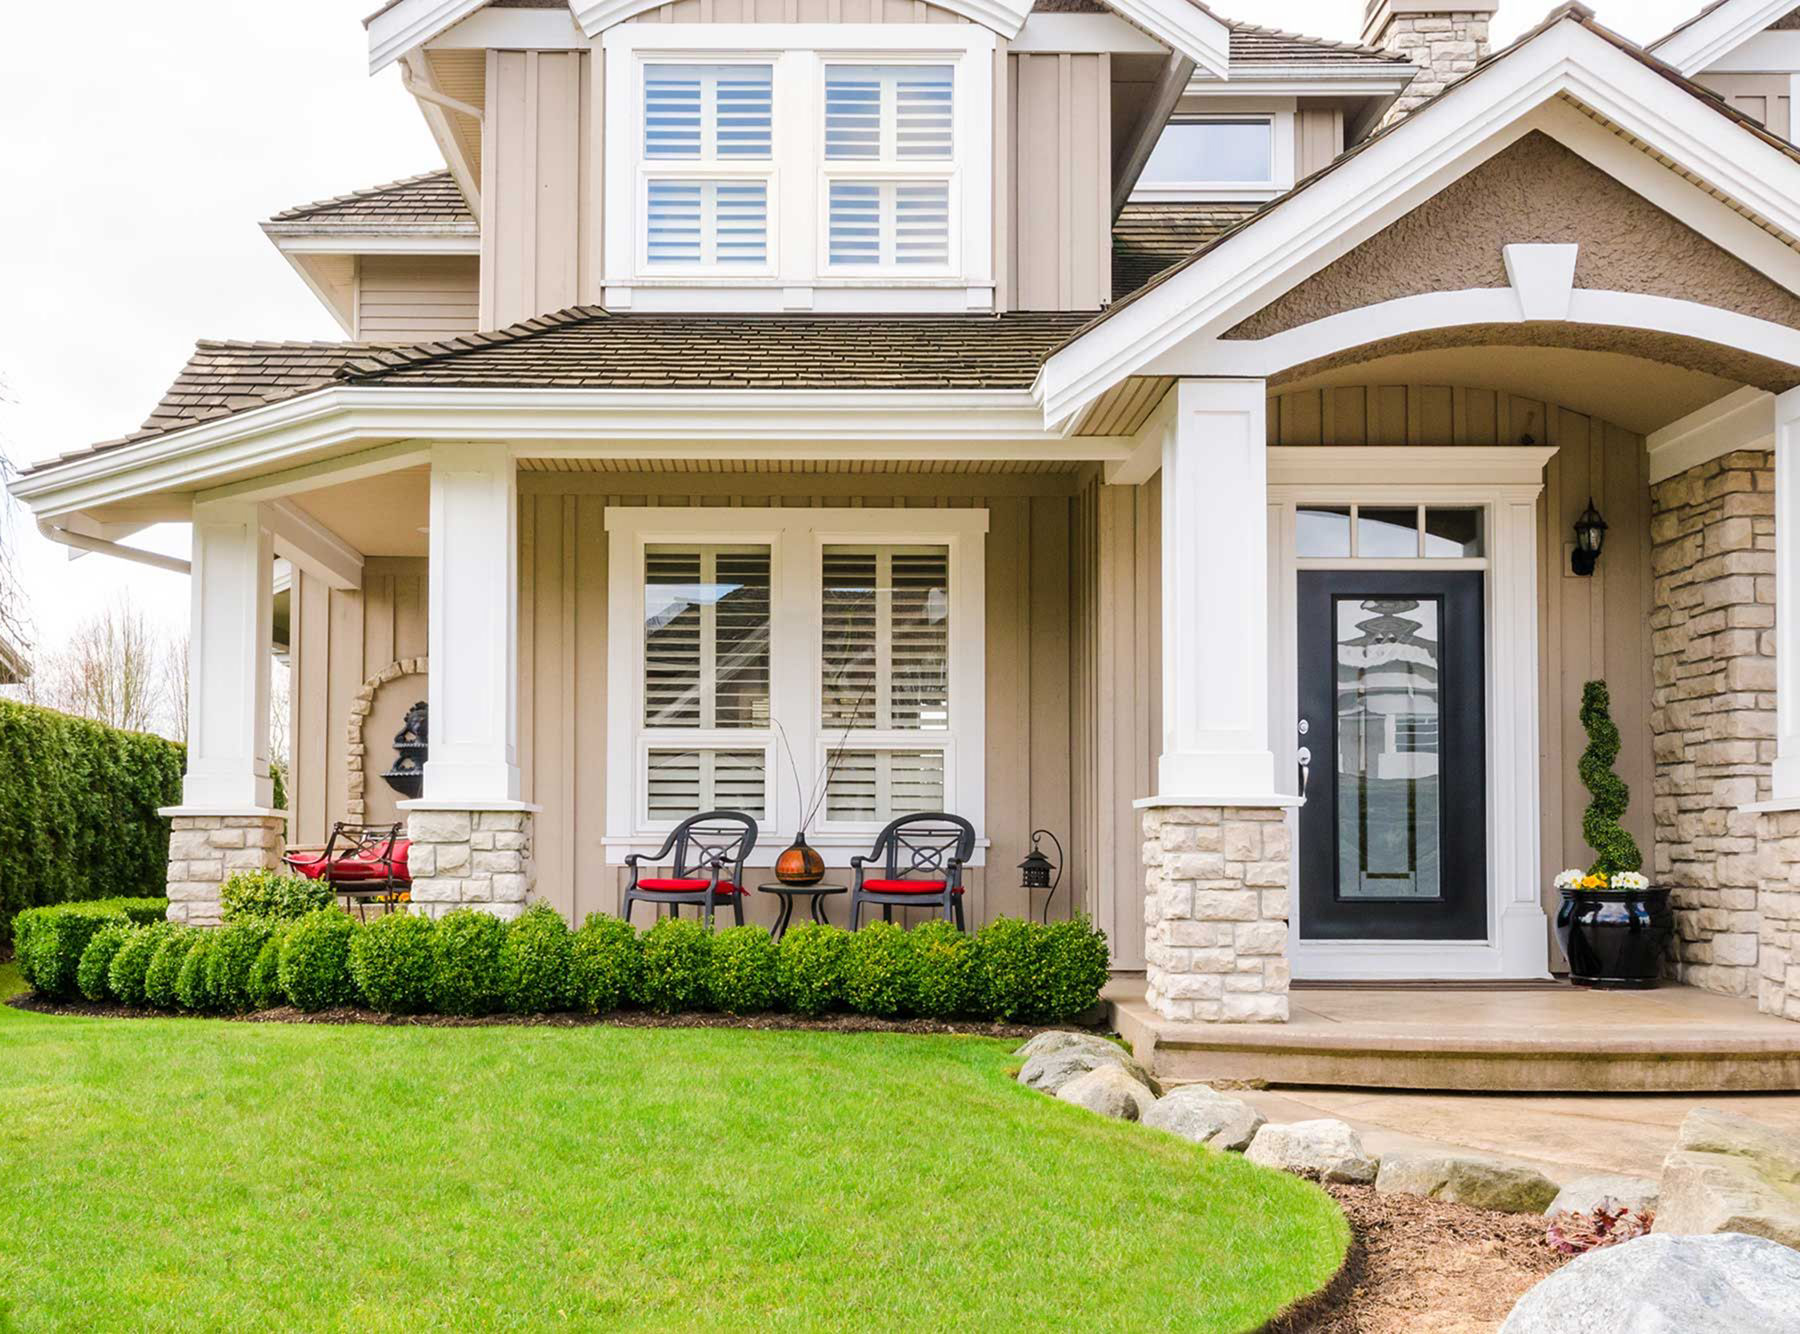 Home's Value Skyway Home Improvement